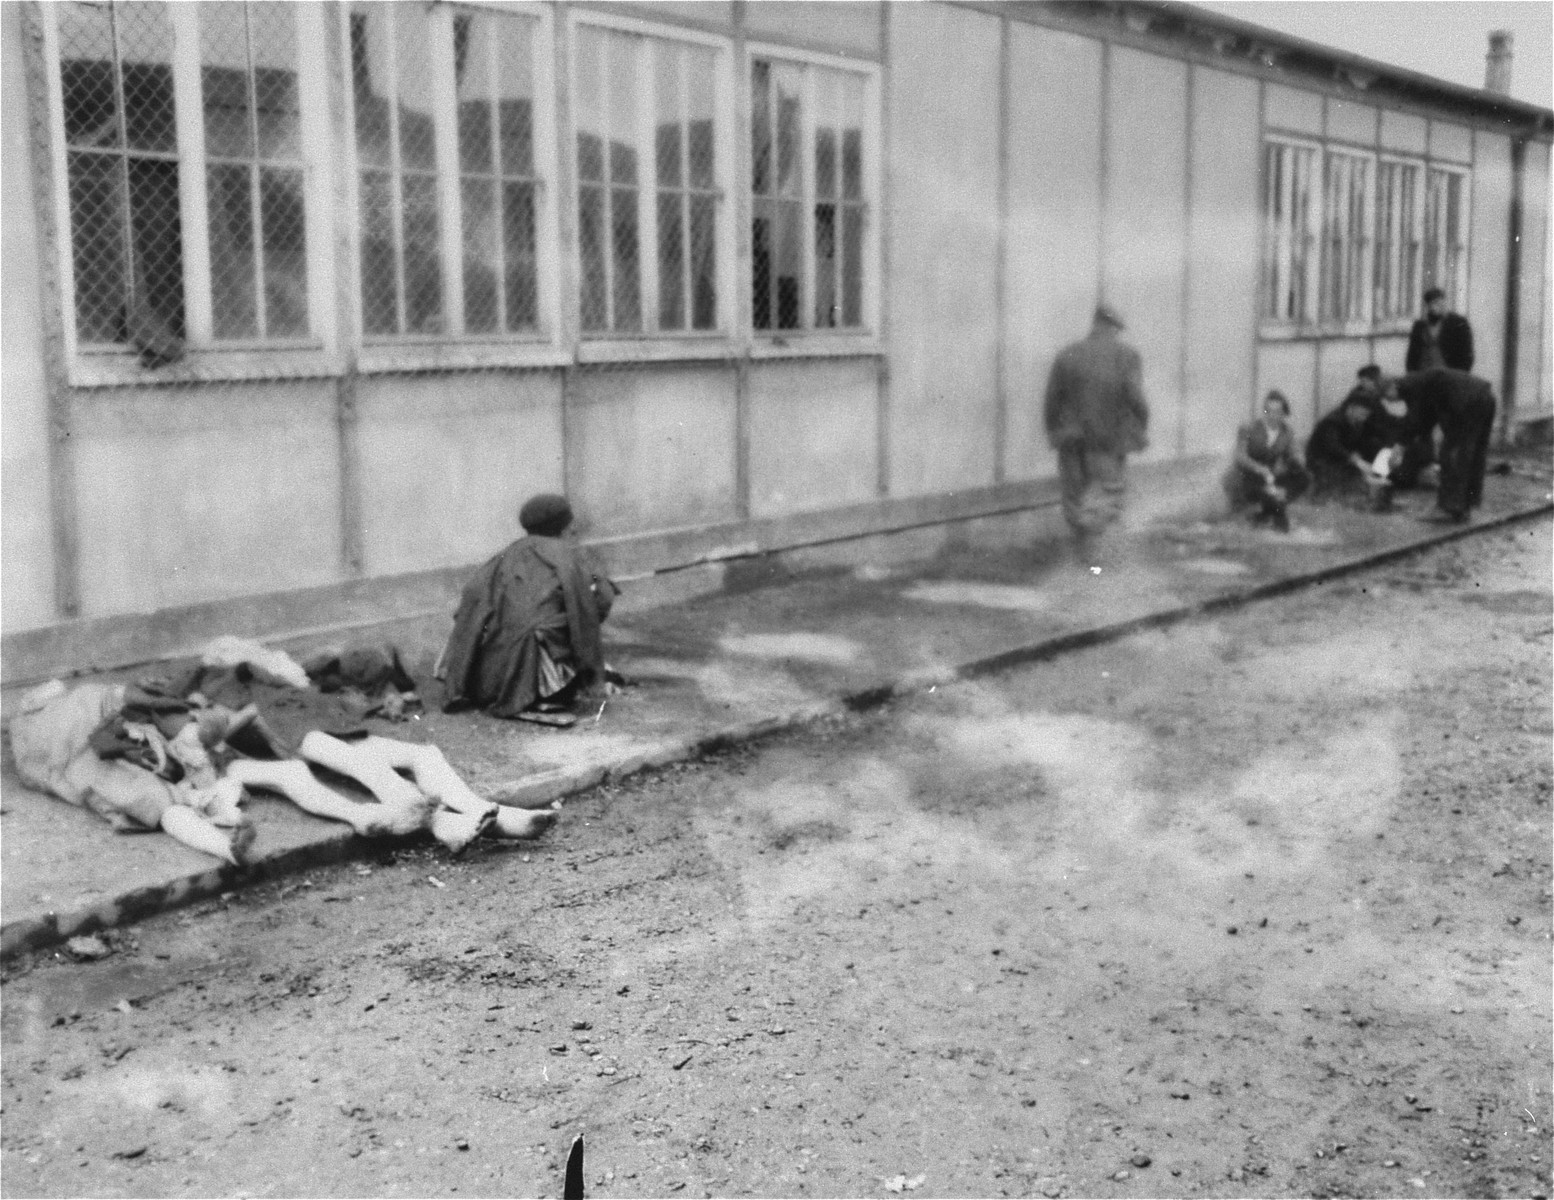 Survivors and corpses outside of a barracks in Dachau.